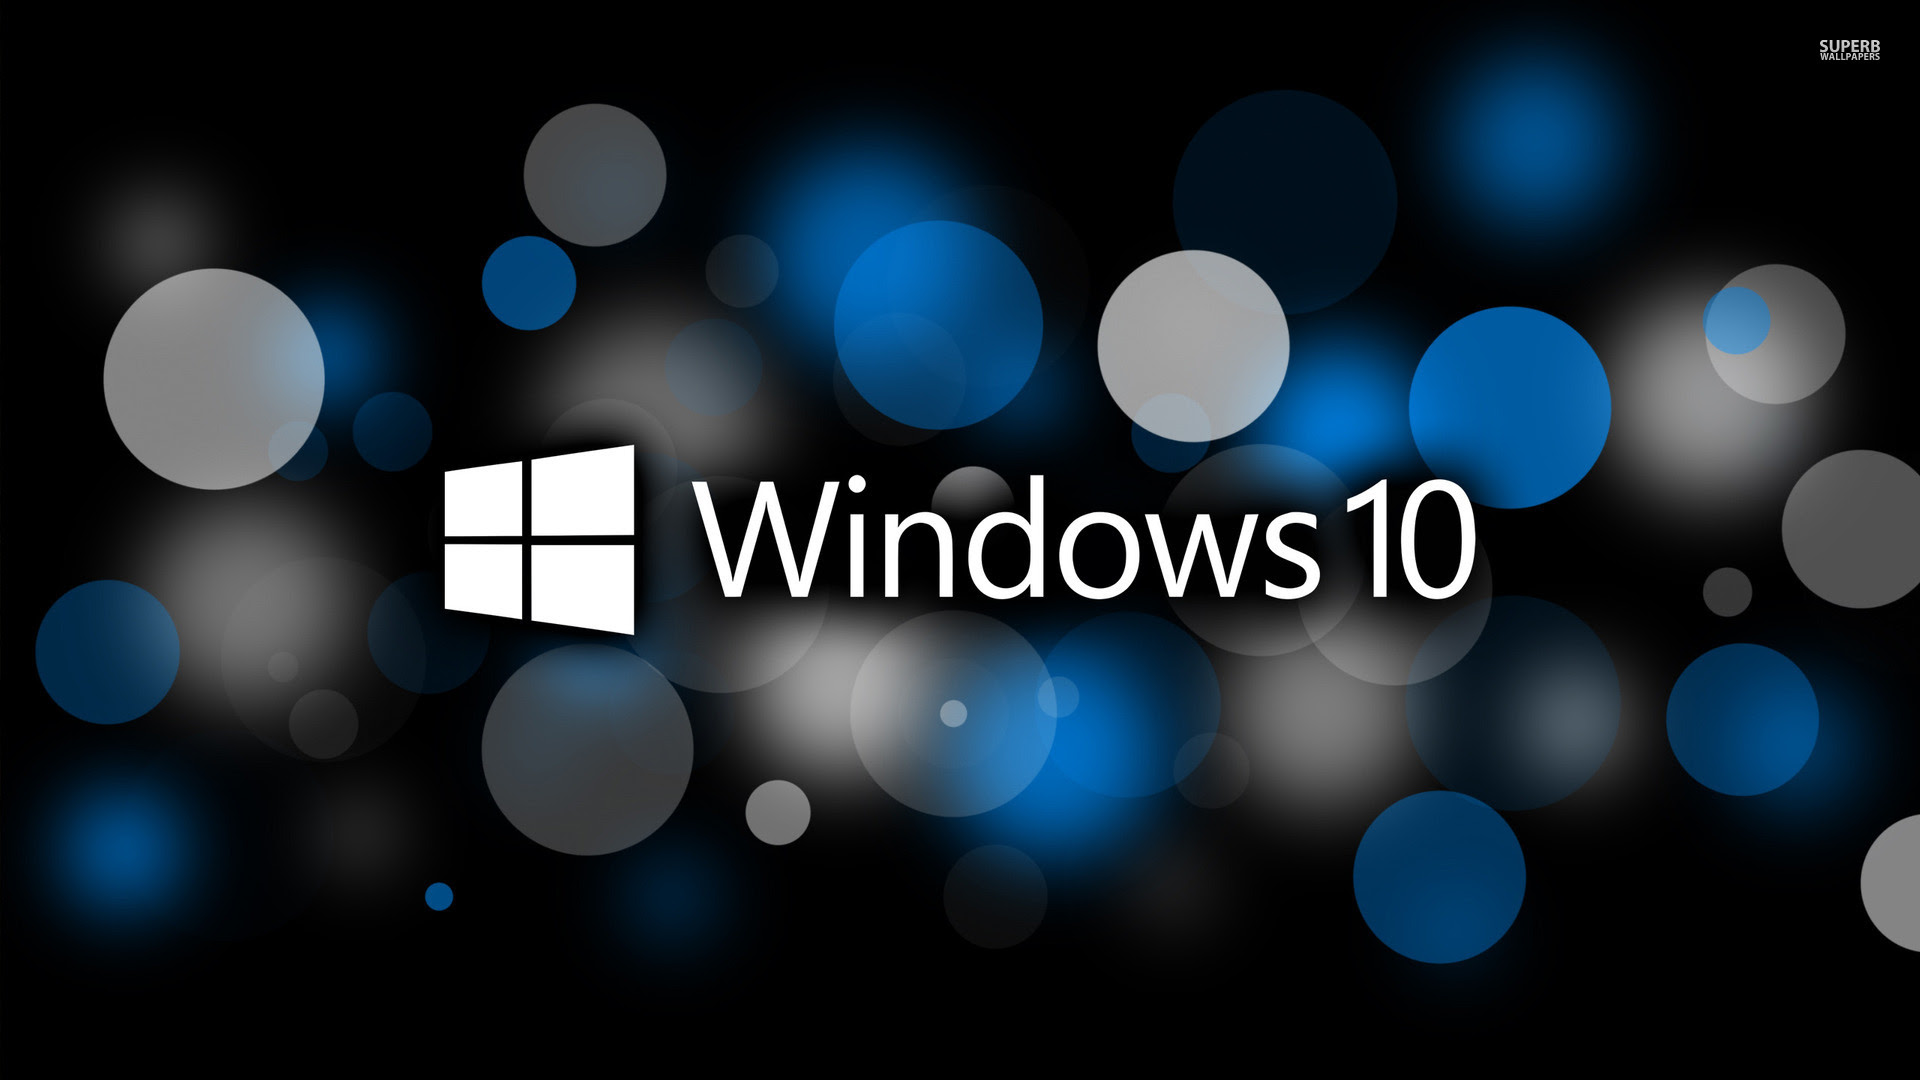 400+ Stunning Windows 10 Wallpapers HD Image Collection 2017